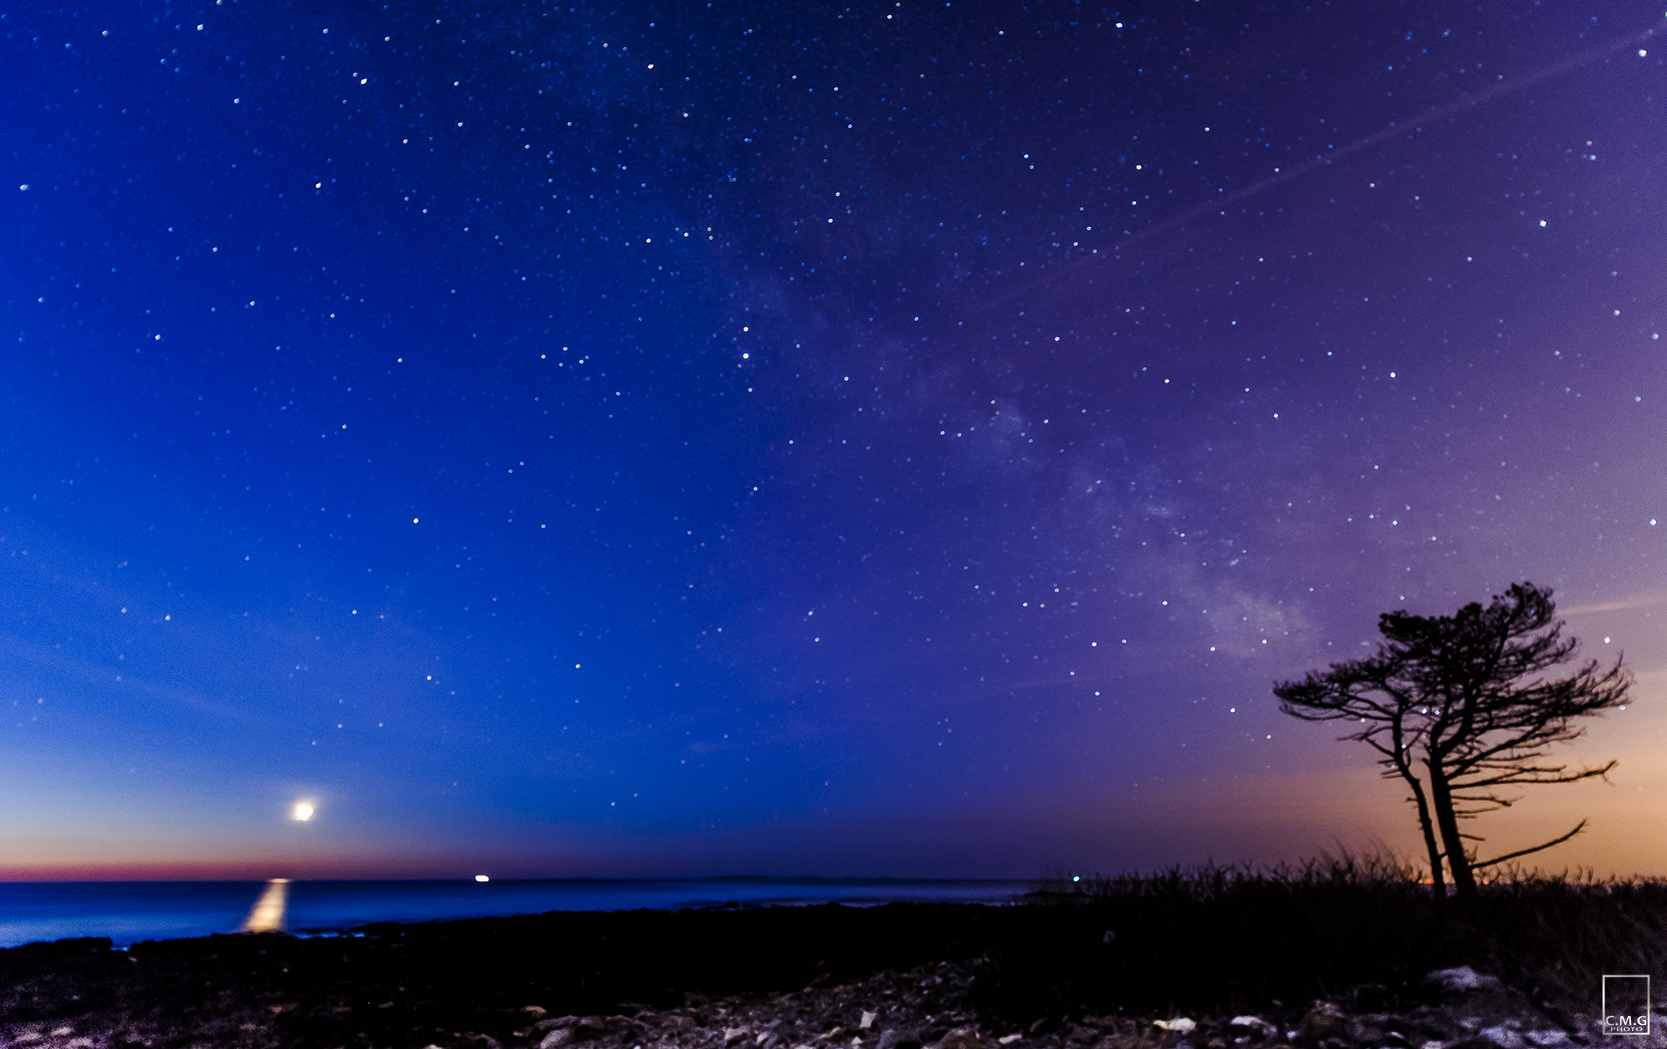 Milky Way and Moon Rise from New Hampshire Coast